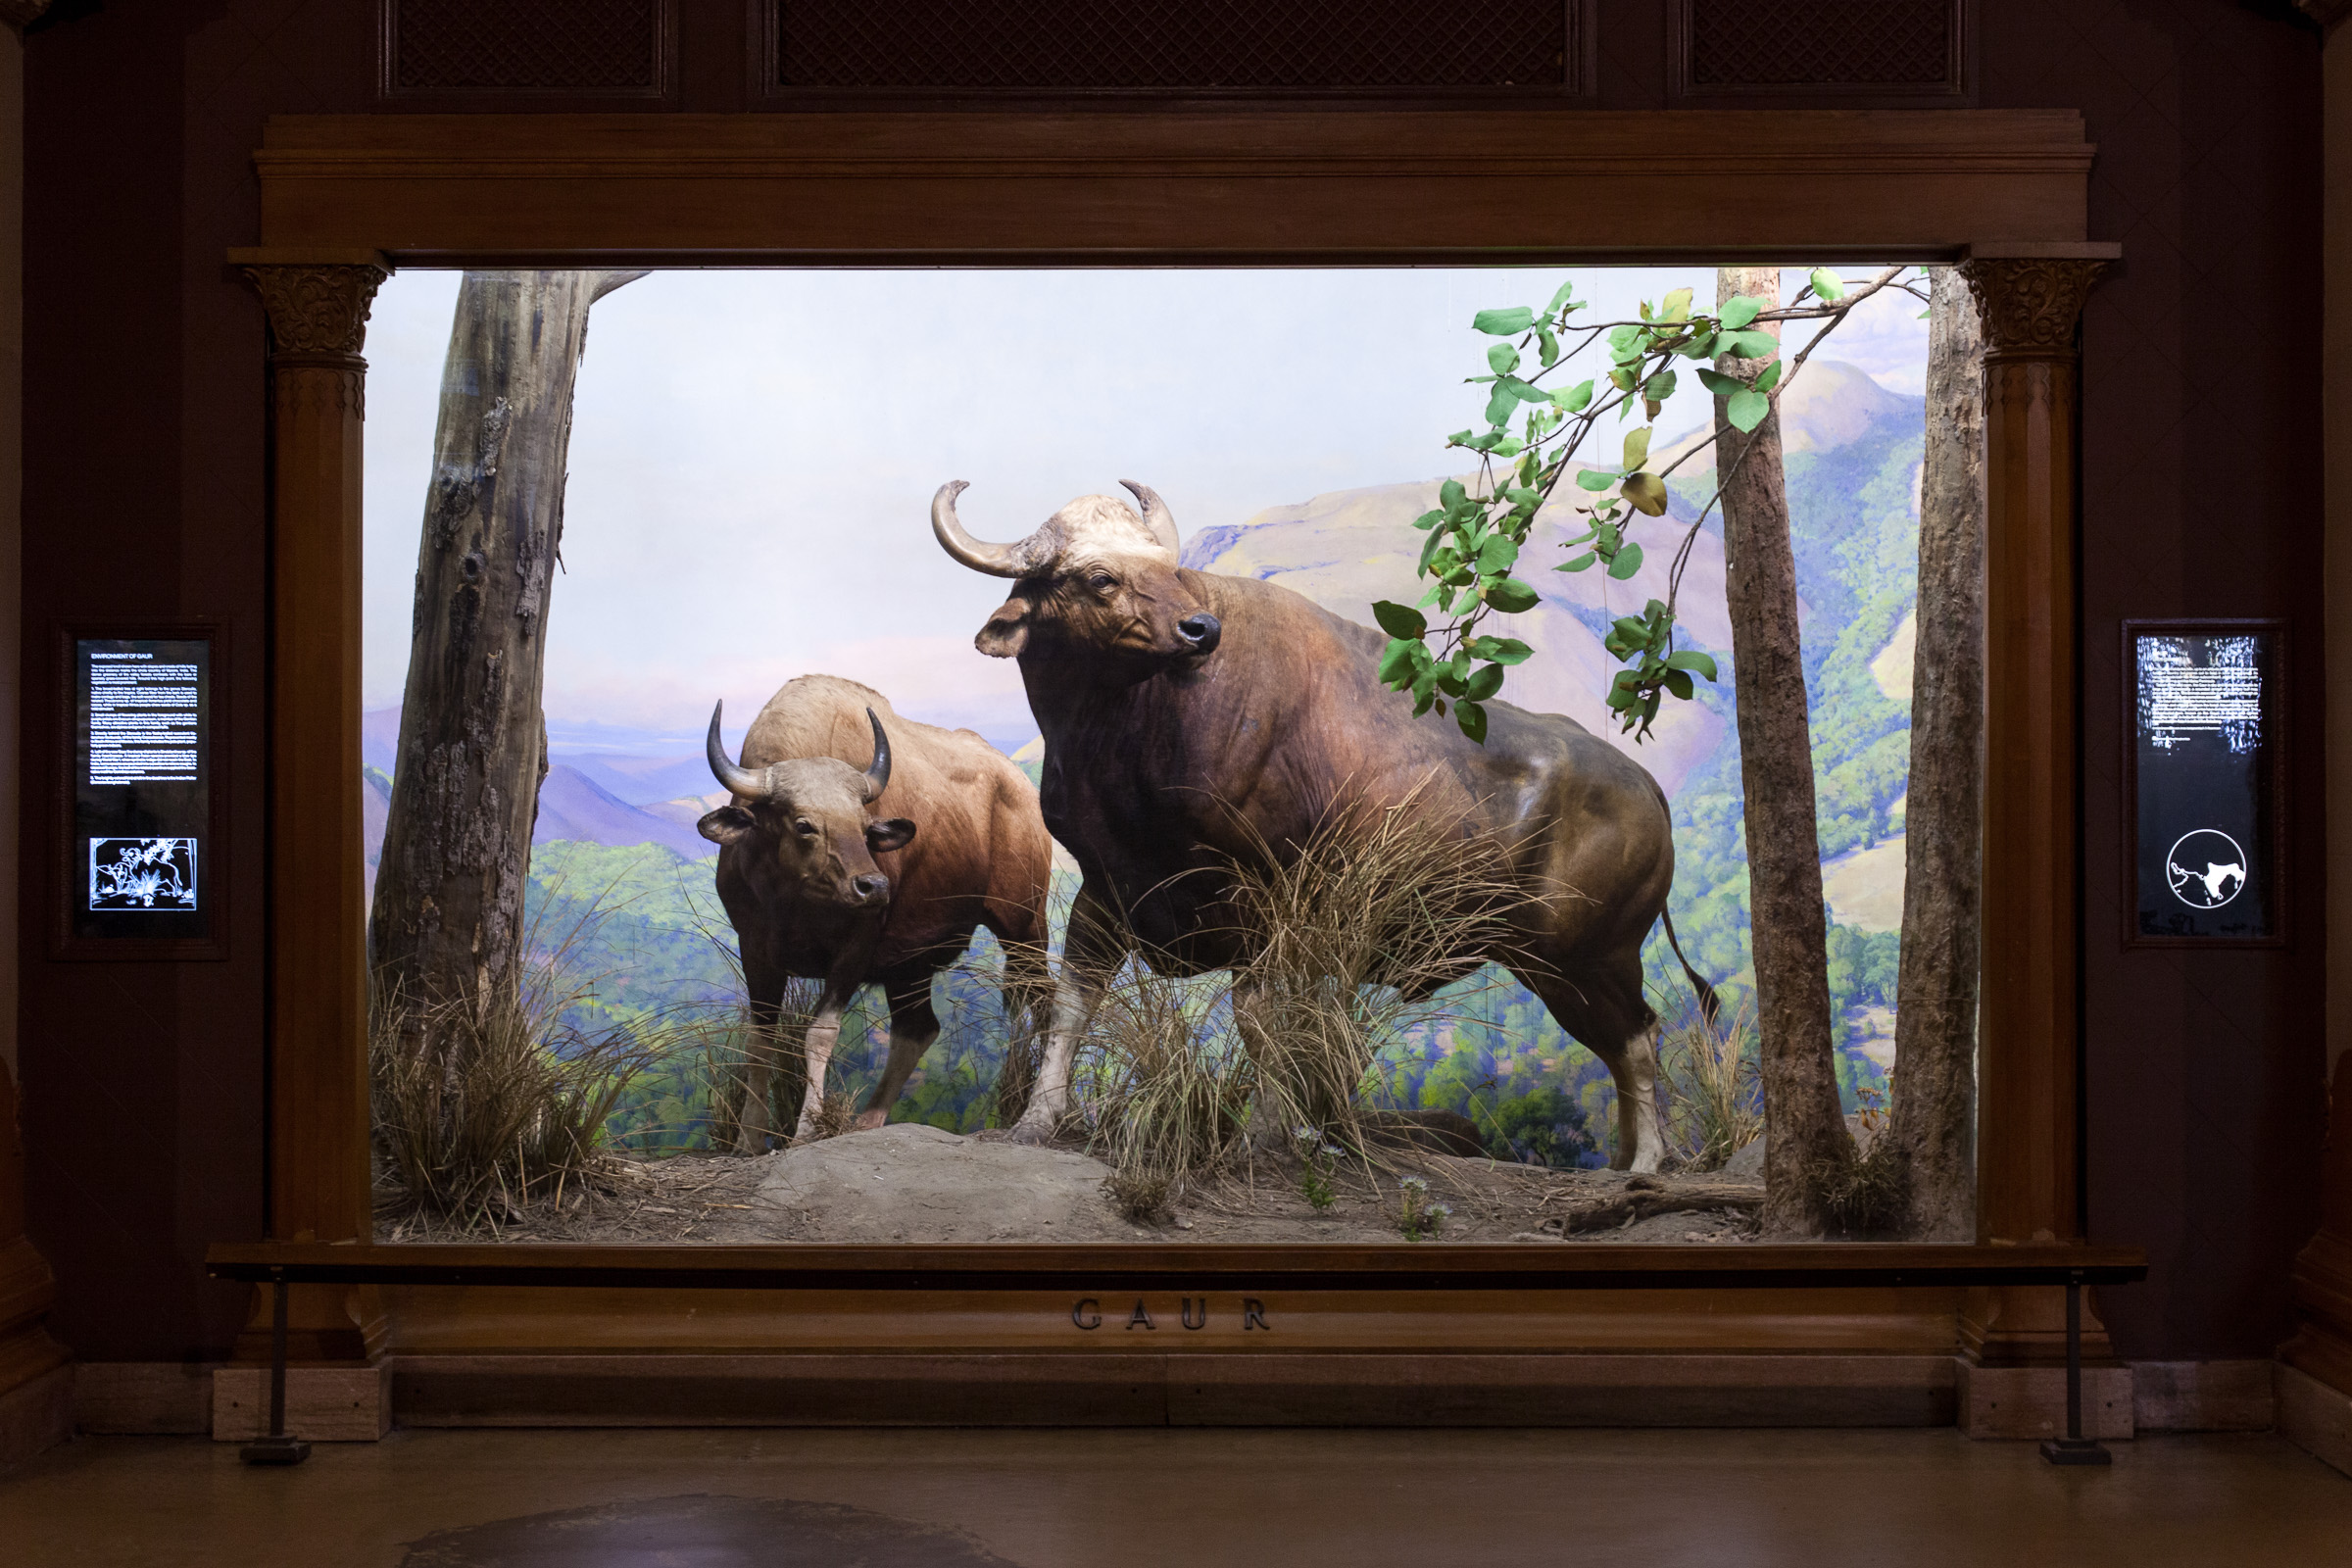 Gaur Diorama in the American Museum of natural History